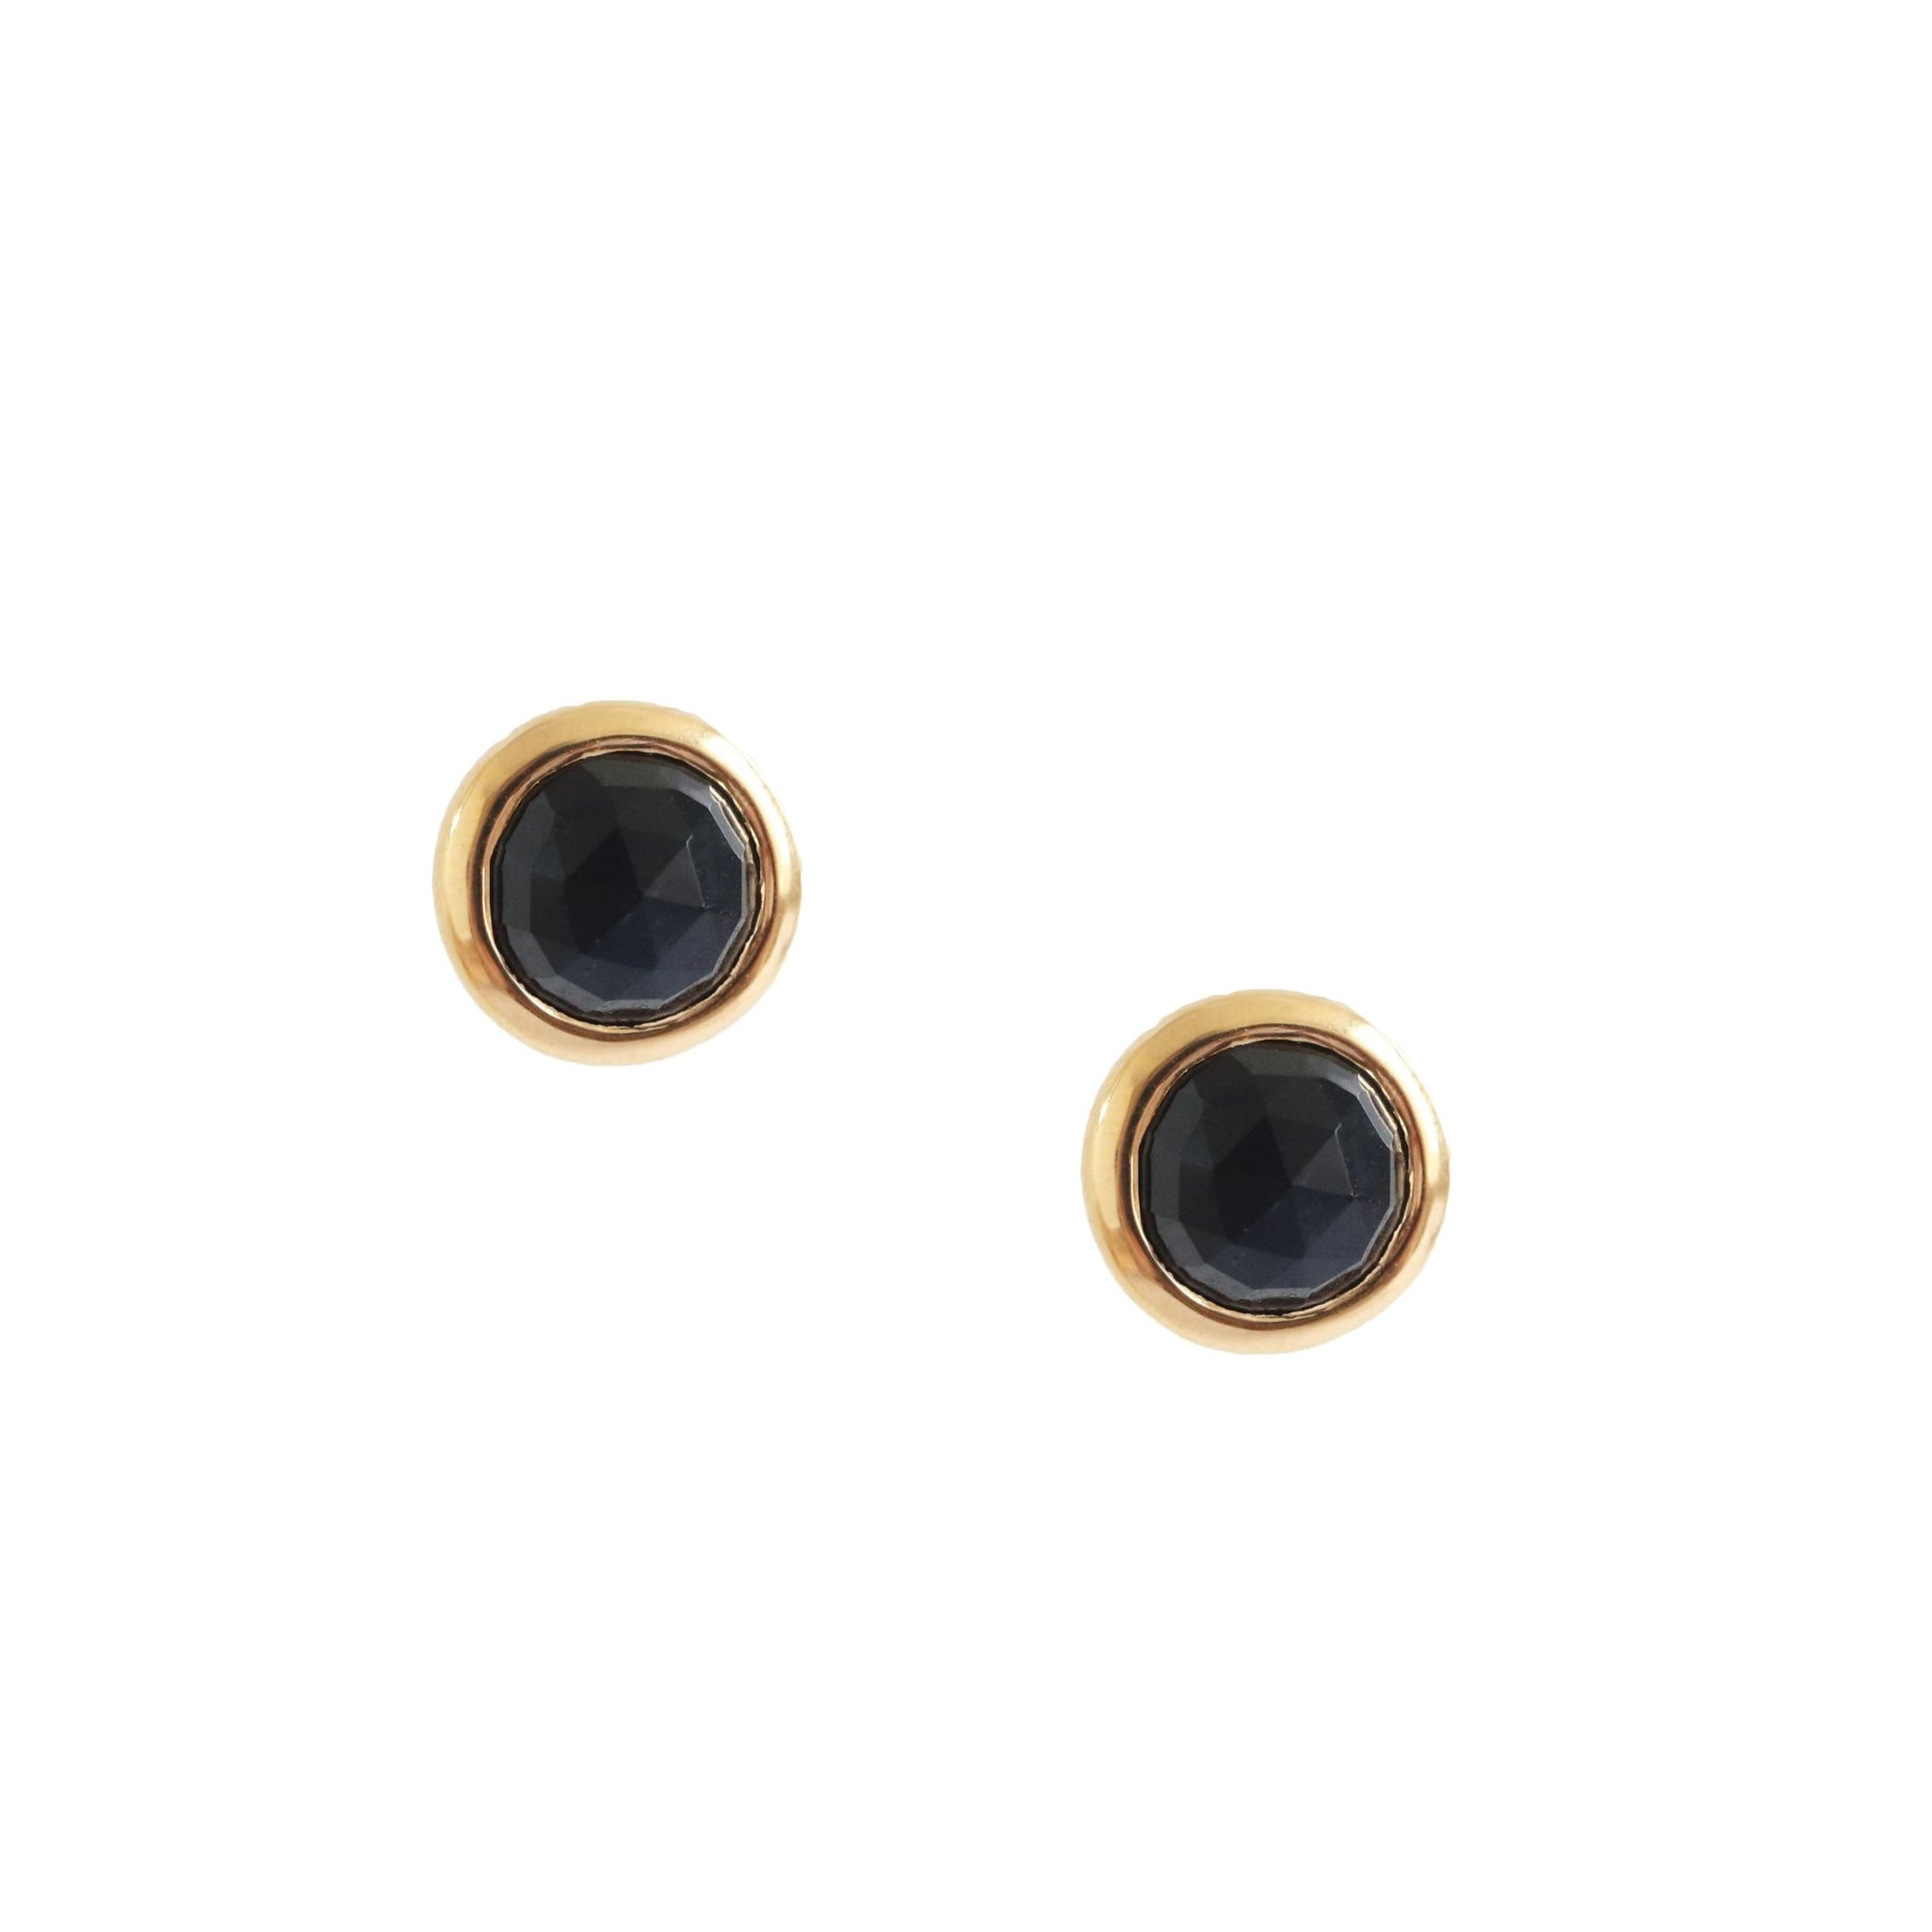 DAINTY LEGACY STUDS - BLACK ONYX & GOLD - SO PRETTY CARA COTTER